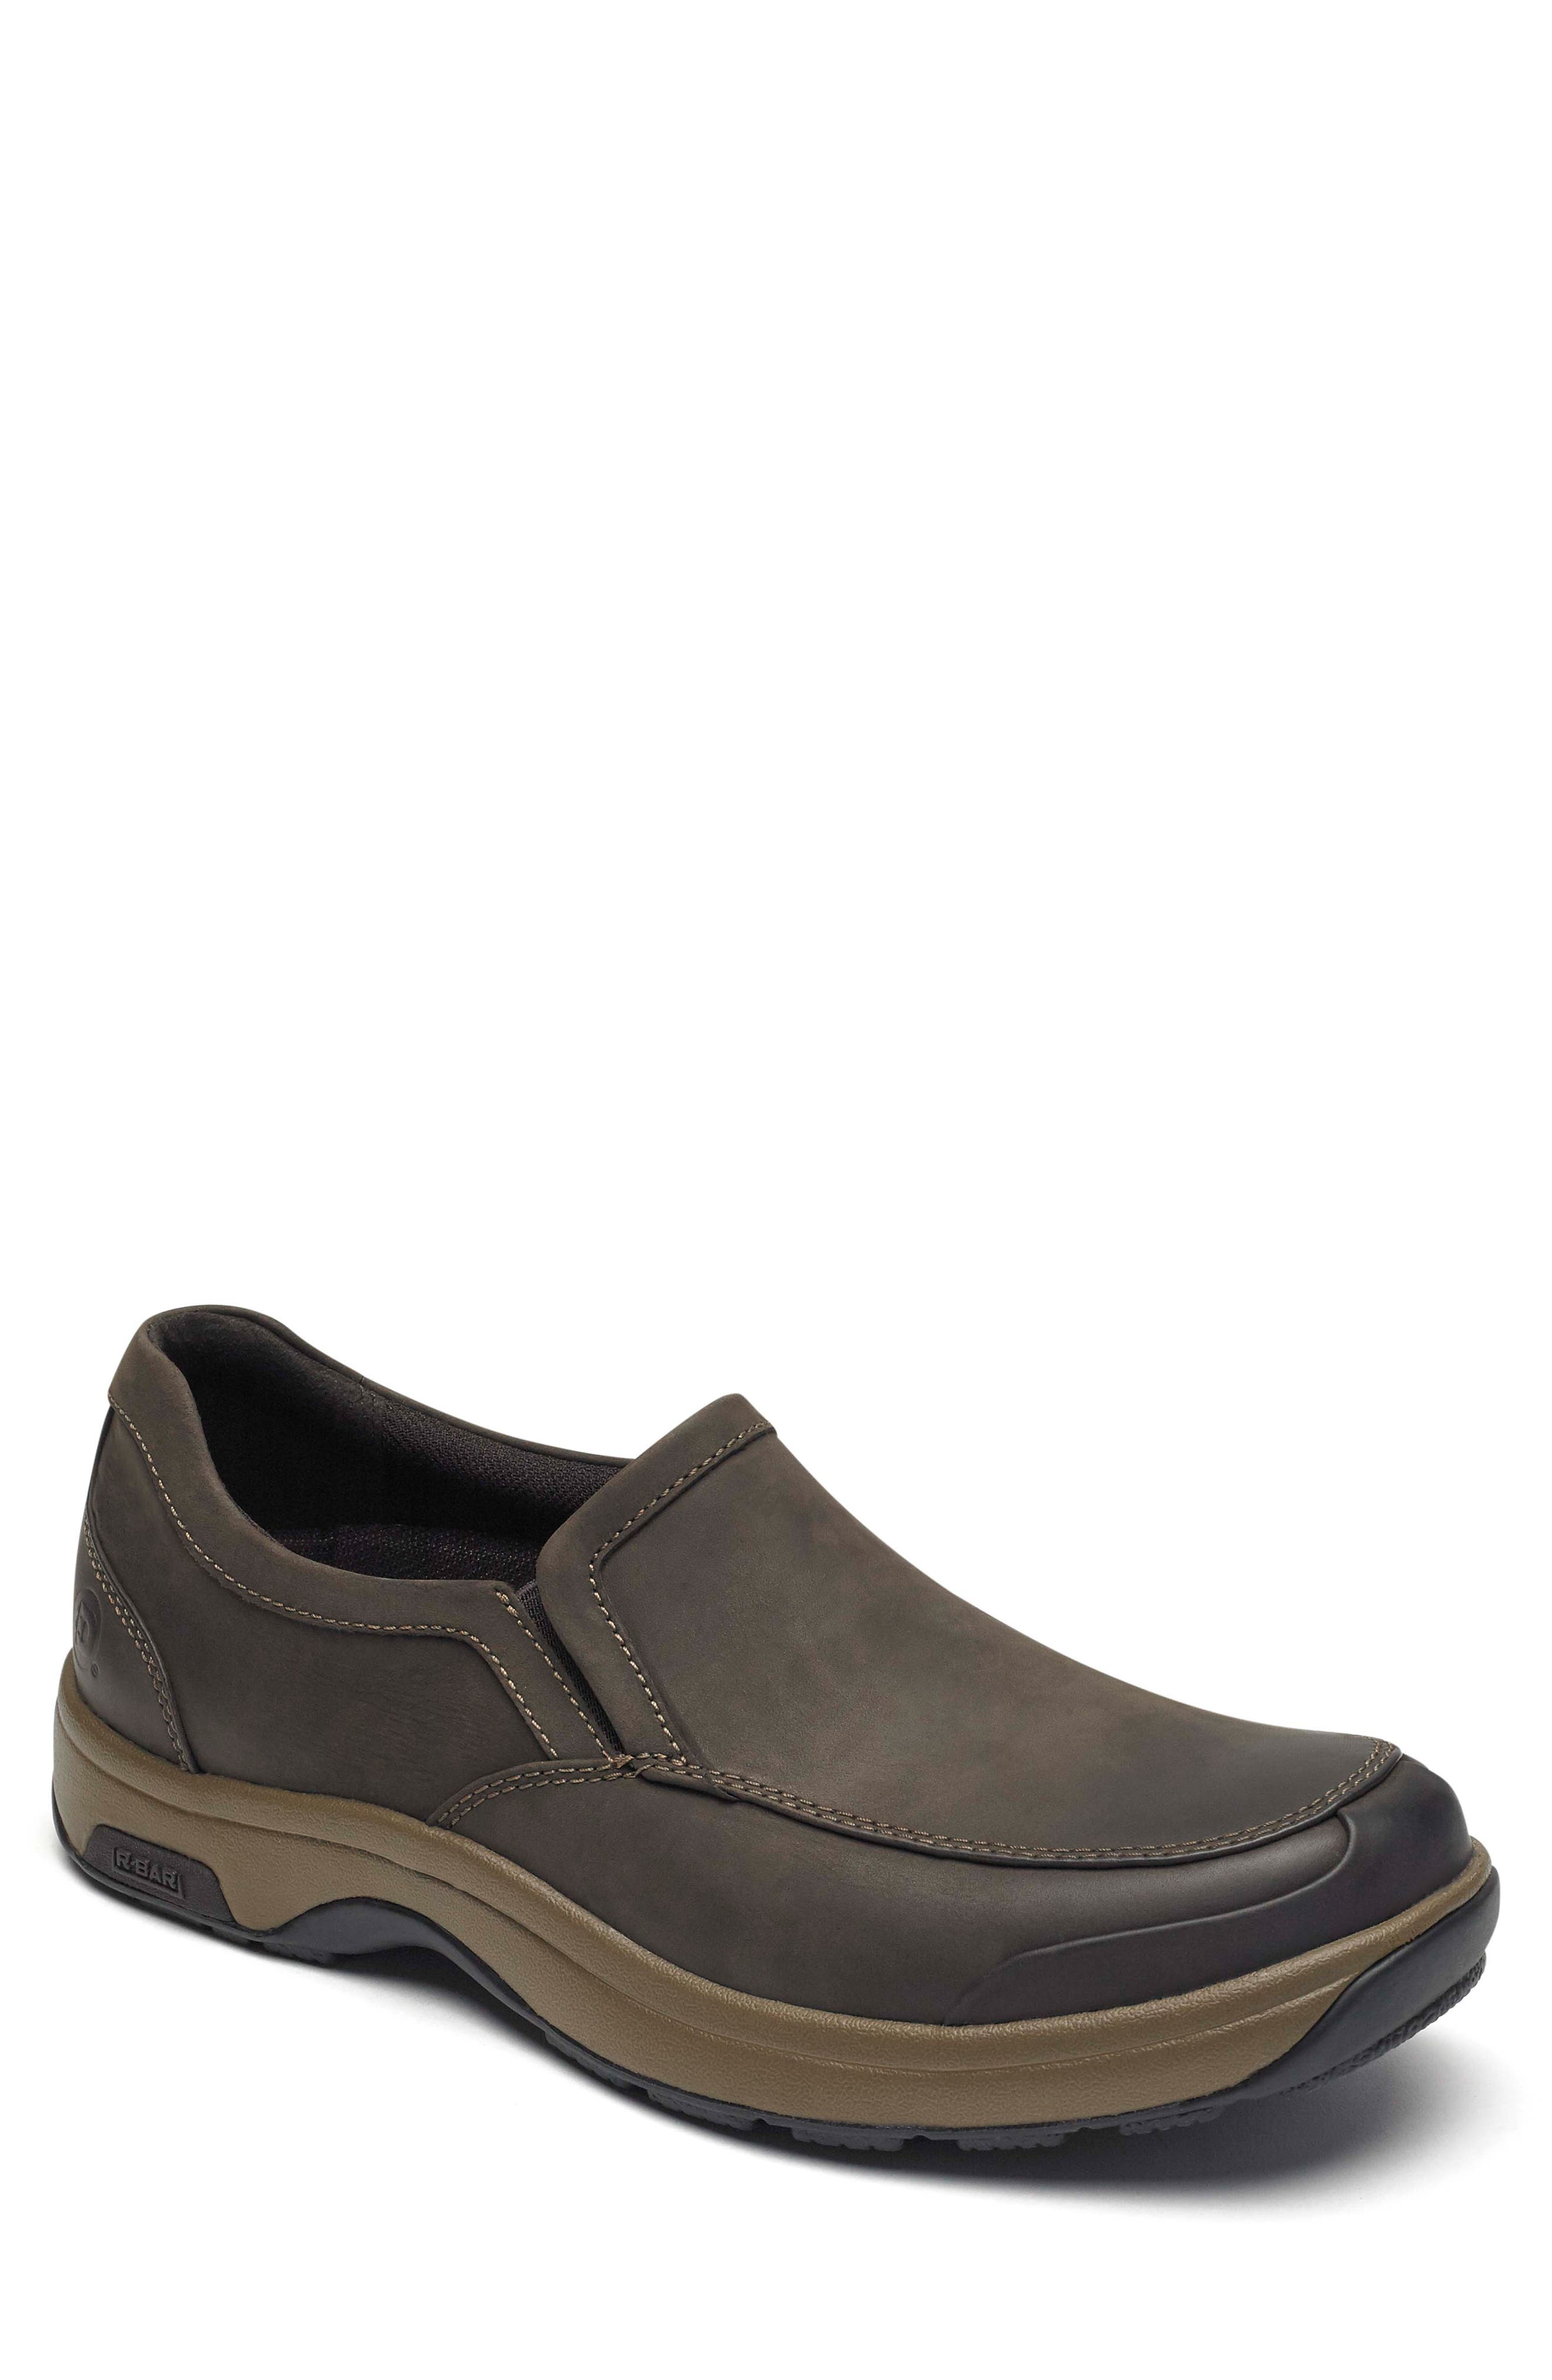 Battery Park Waterproof Slip-On,                         Main,                         color, BROWN LEATHER